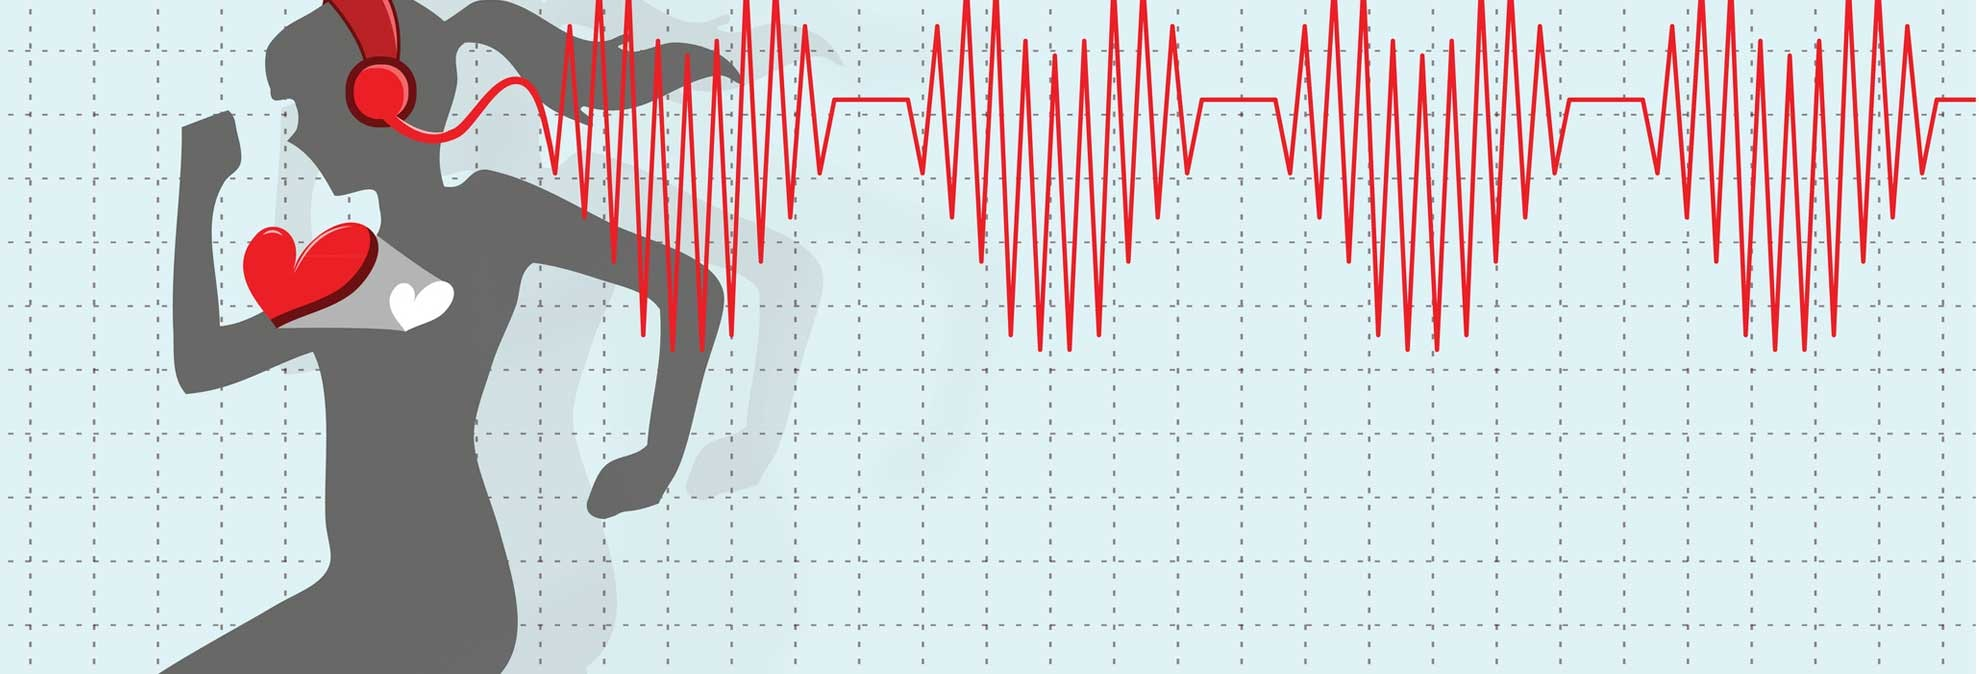 The Best Way To Recover From A Heart Attack Consumer Reports